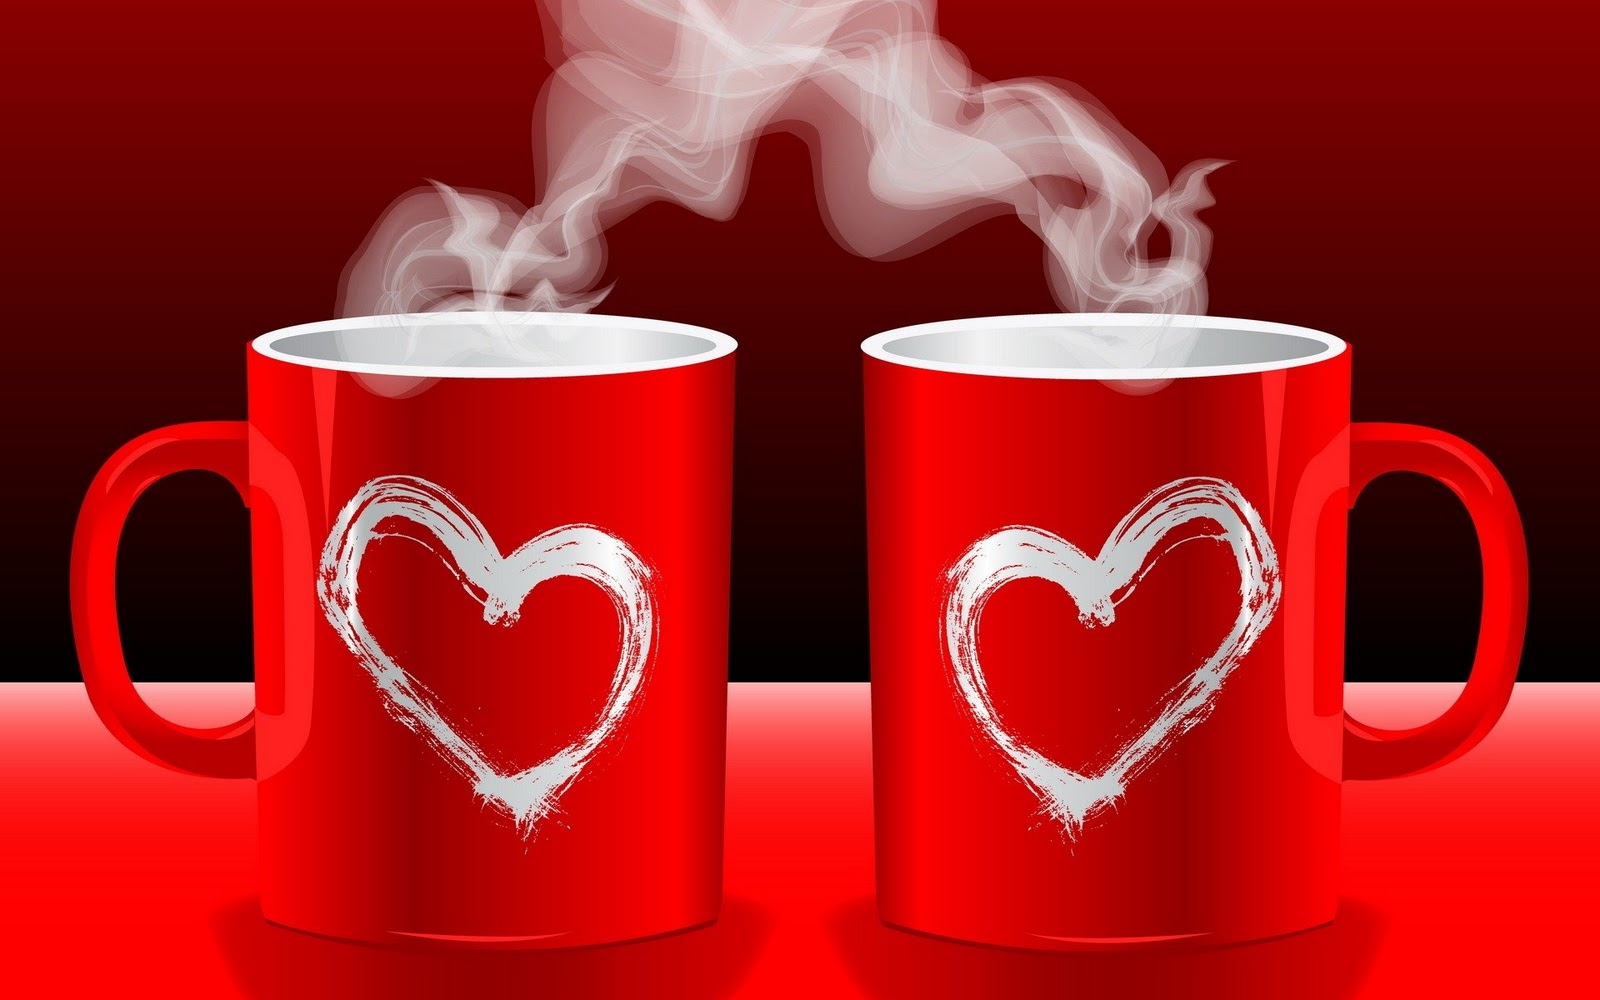 http://2.bp.blogspot.com/-xnniVlQQEDA/TsQM77afuUI/AAAAAAAAA64/U72xTwRkZkU/s1600/Love+Hearts+Coffee+Good+Morning+HD+Wallpaper+-+LoveWallpapers4u.Blogsp